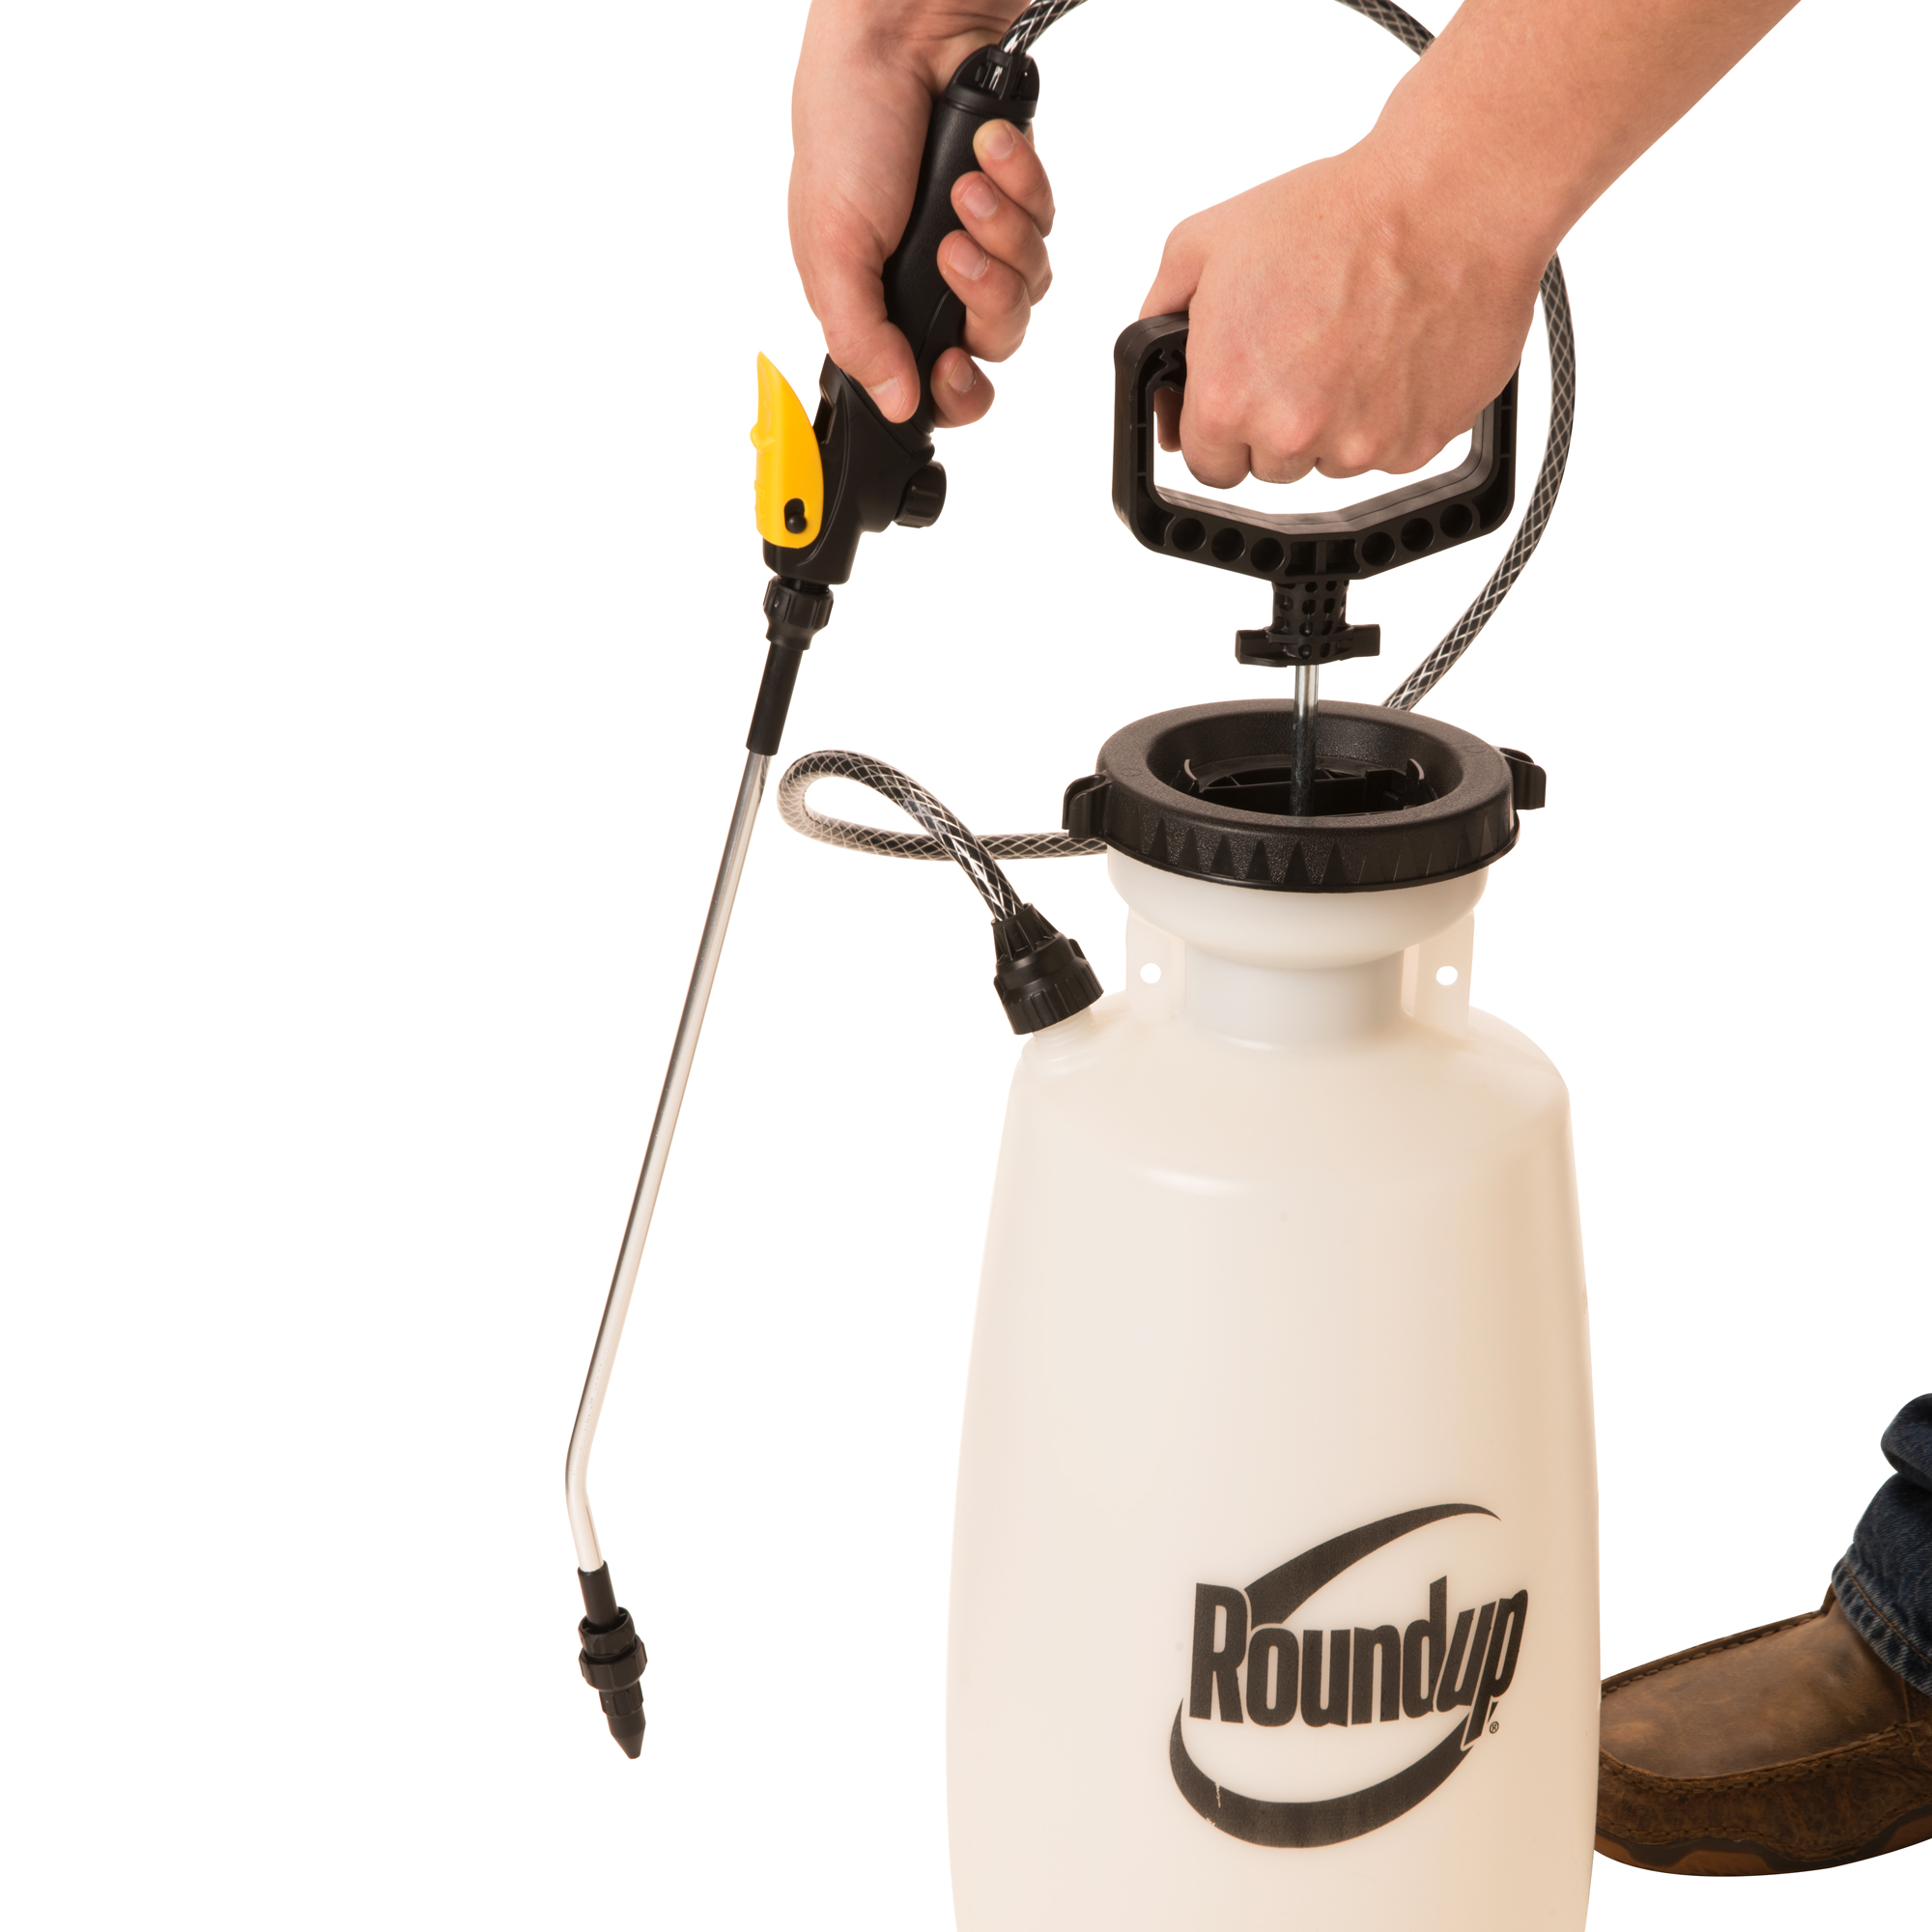 Roundup Multi Use Home And Garden Sprayer